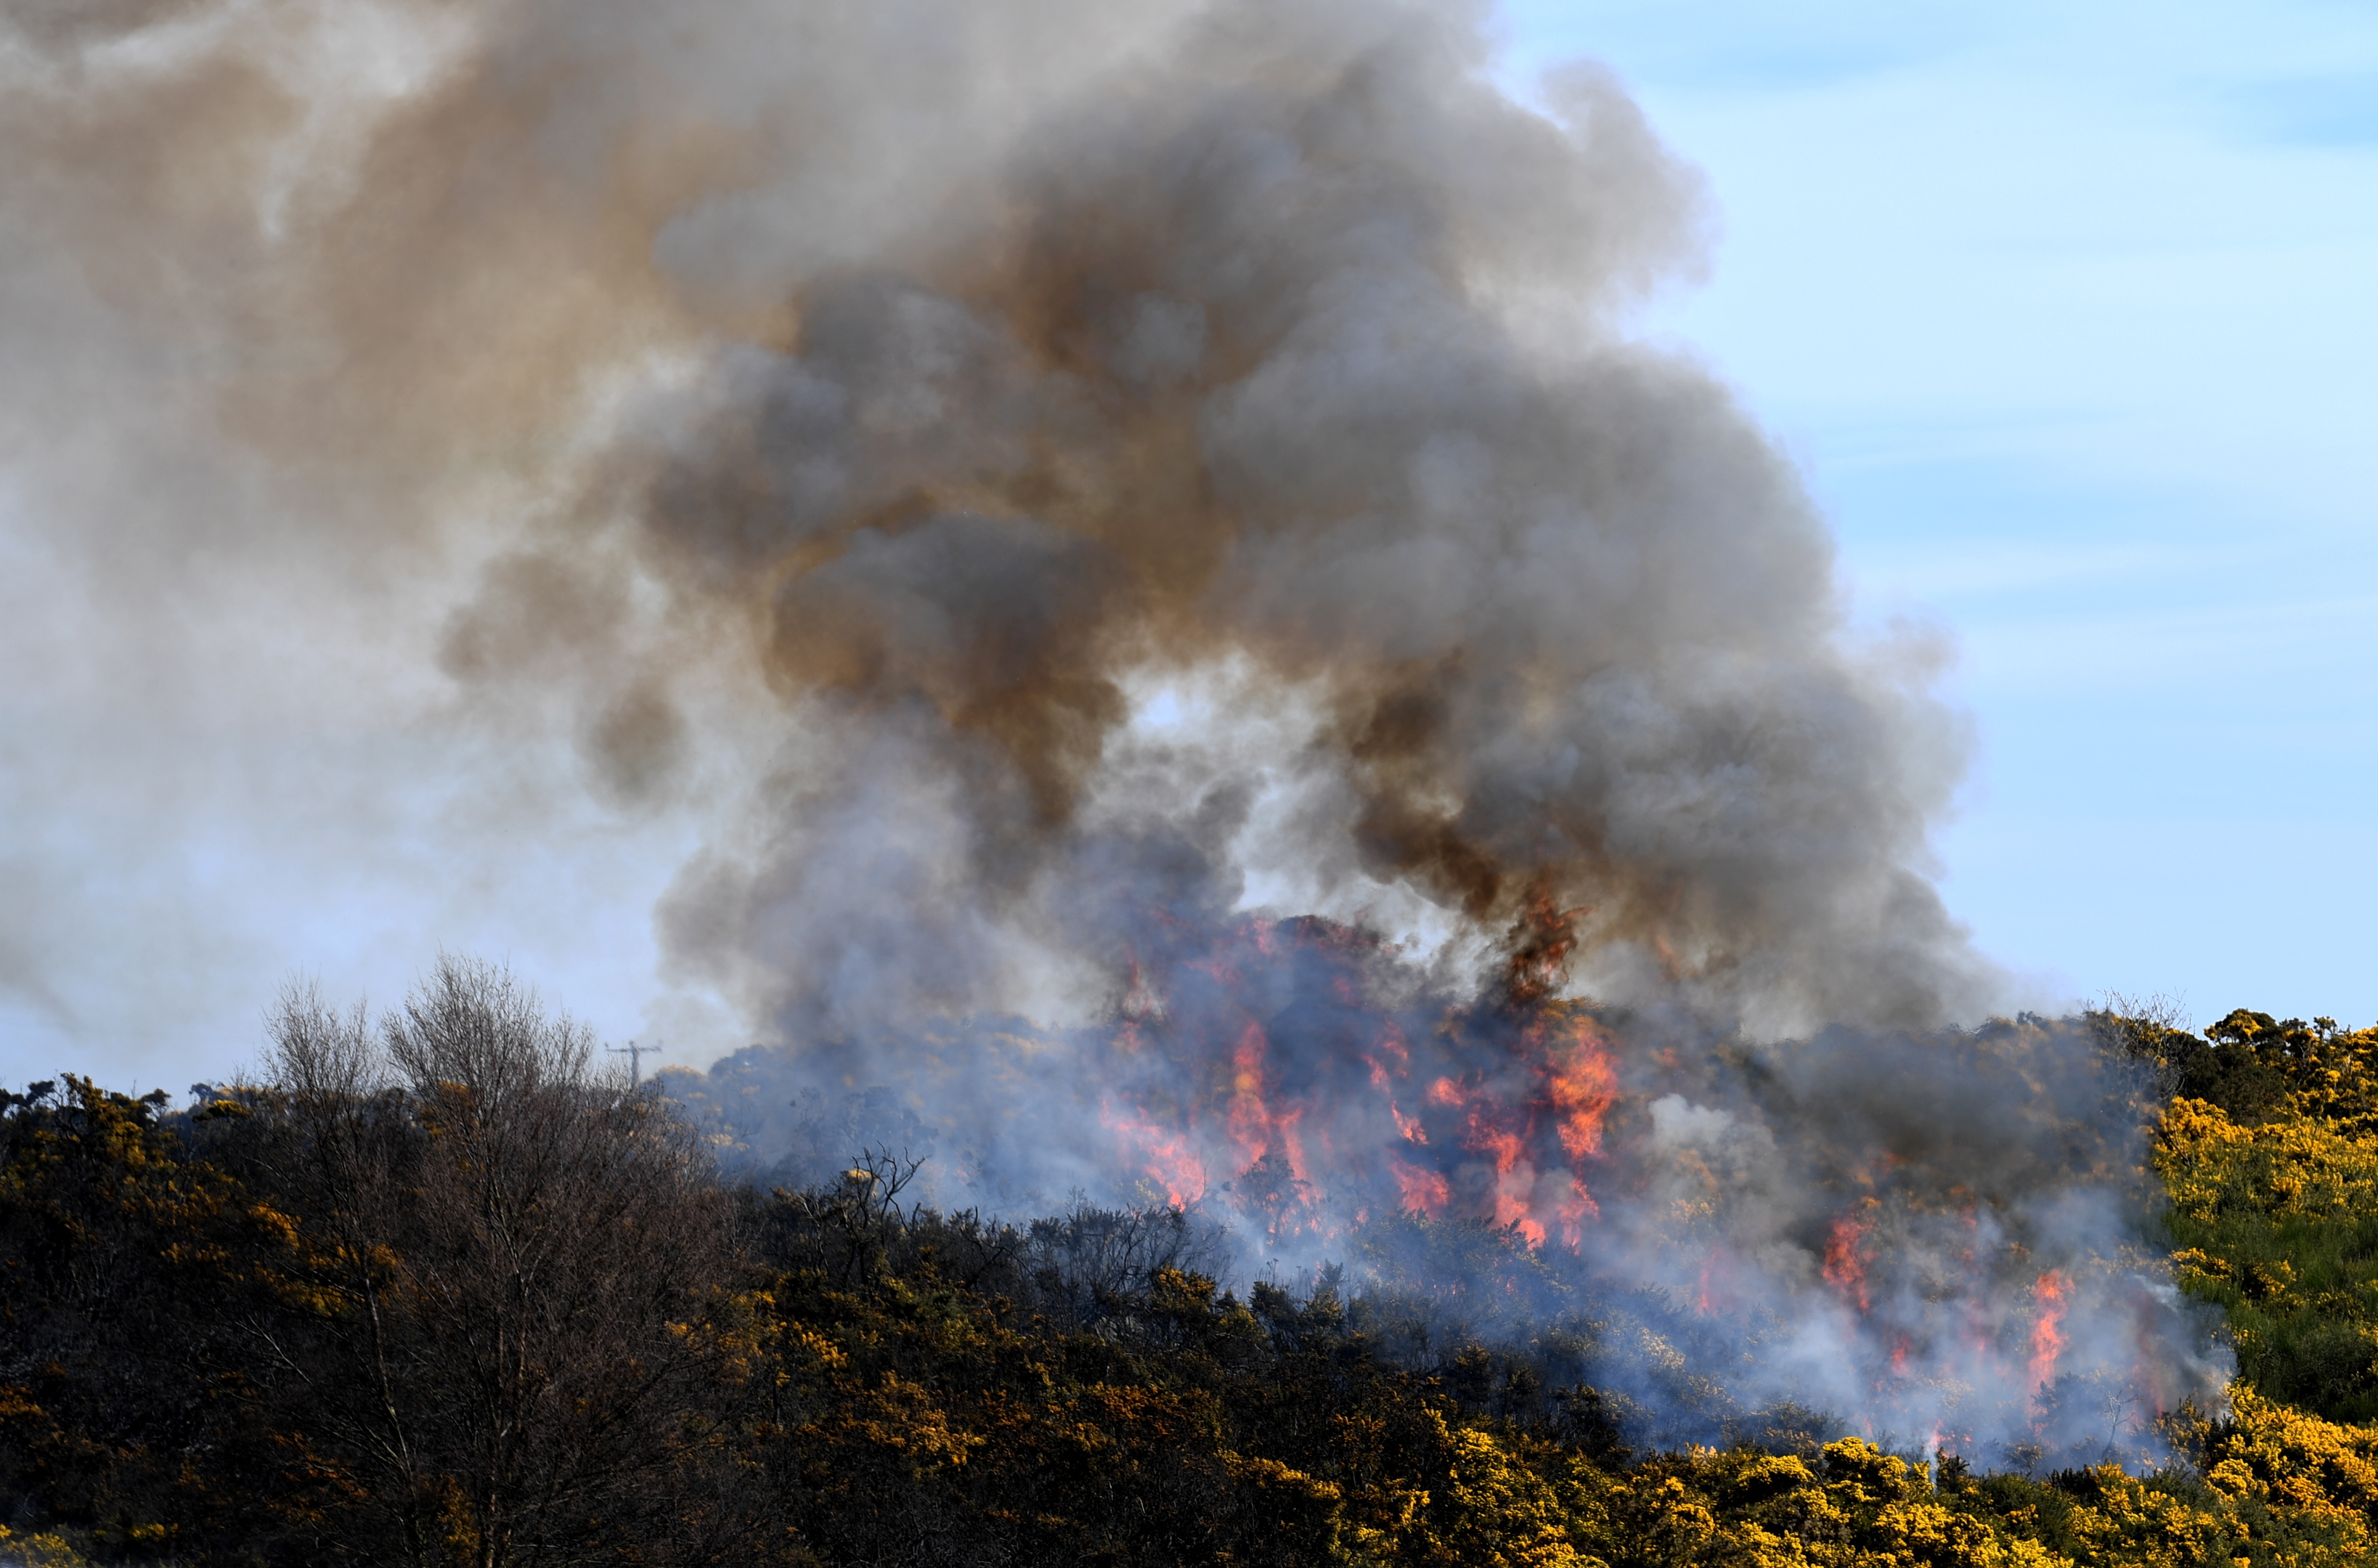 flames: Fire crews tackled the blaze for around eight hours on Saturday.